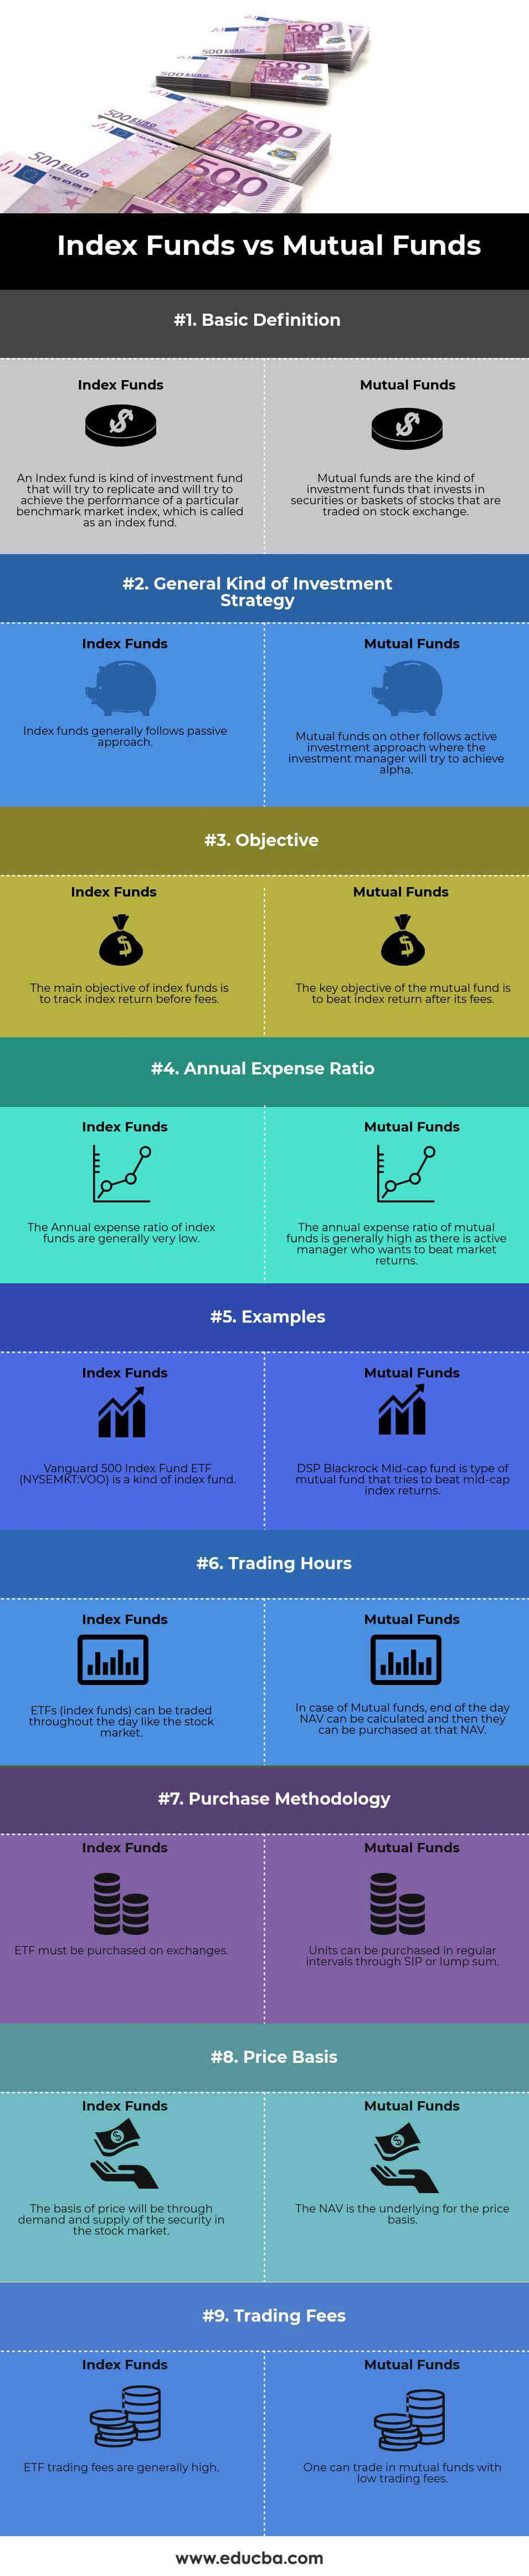 Index-Funds-vs-Mutual-Funds-info